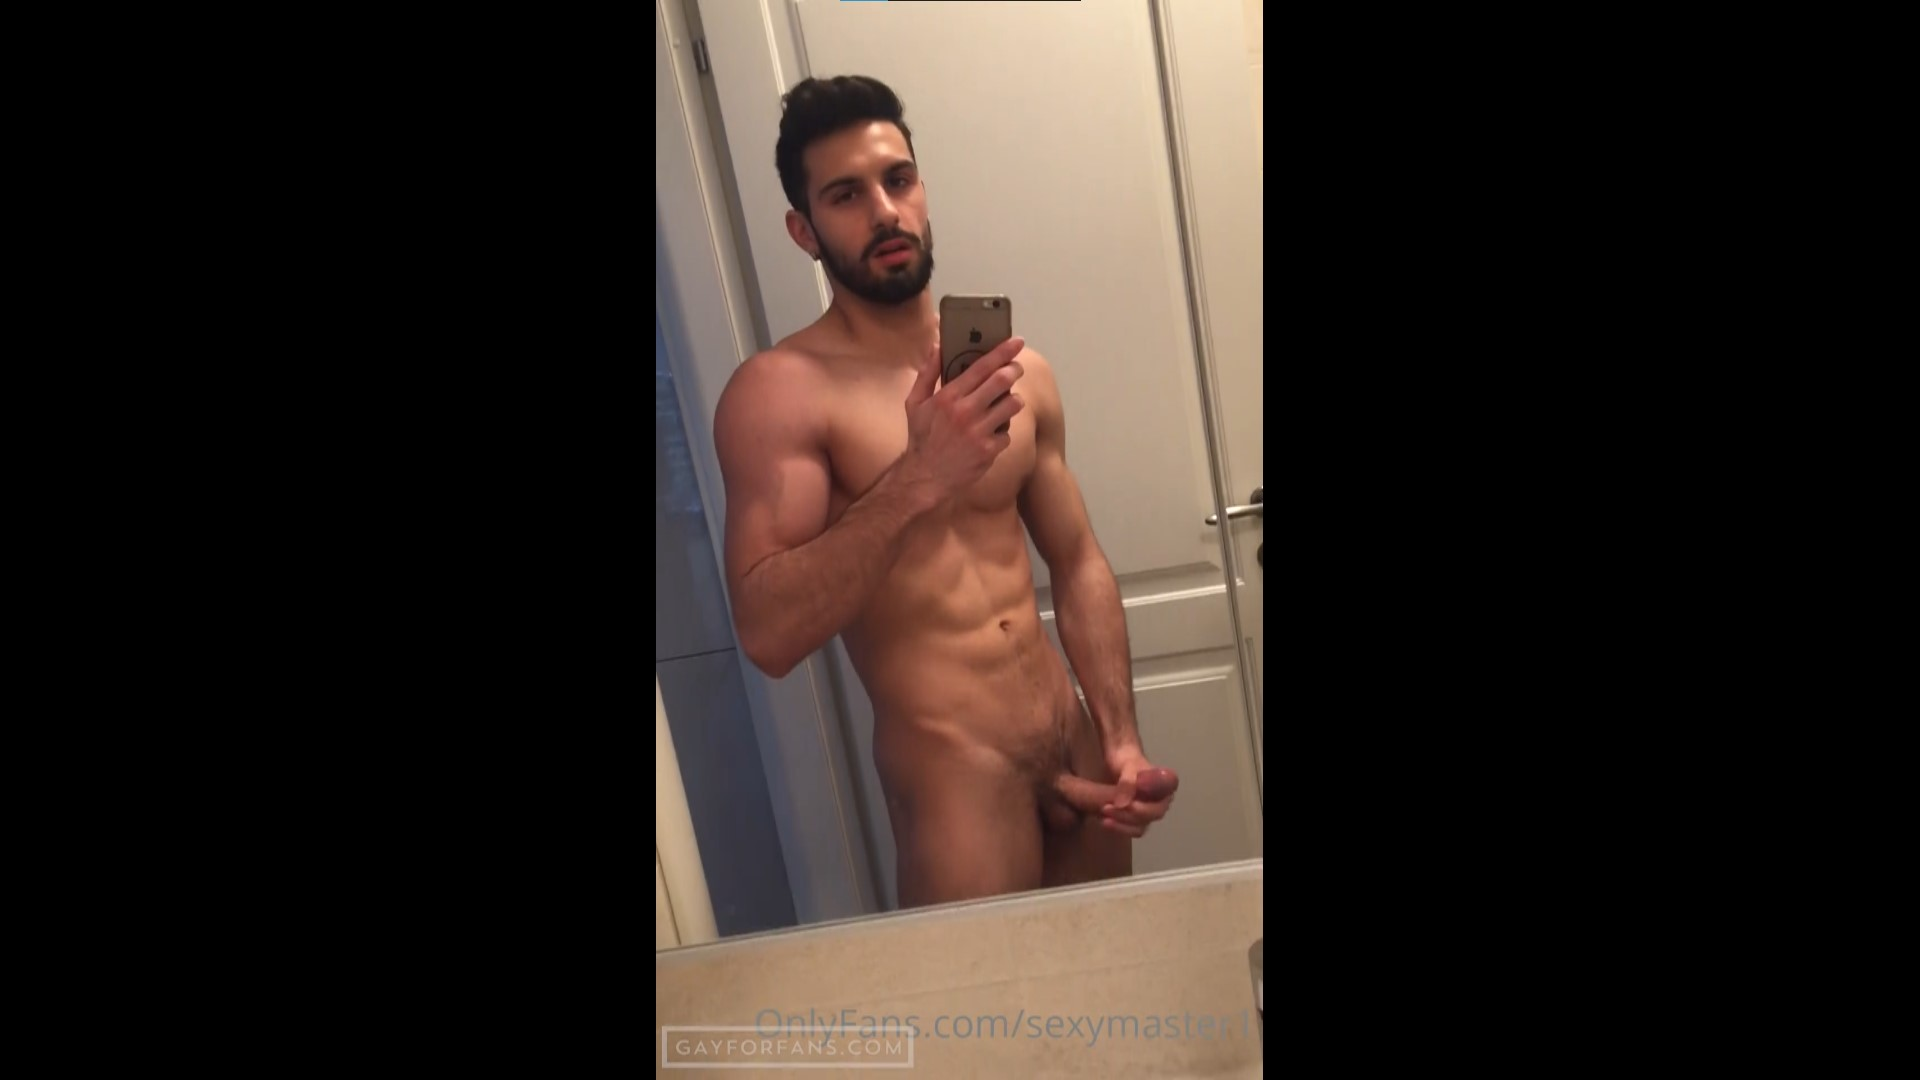 Jerking off and shooting a load into my hand - Katoptris